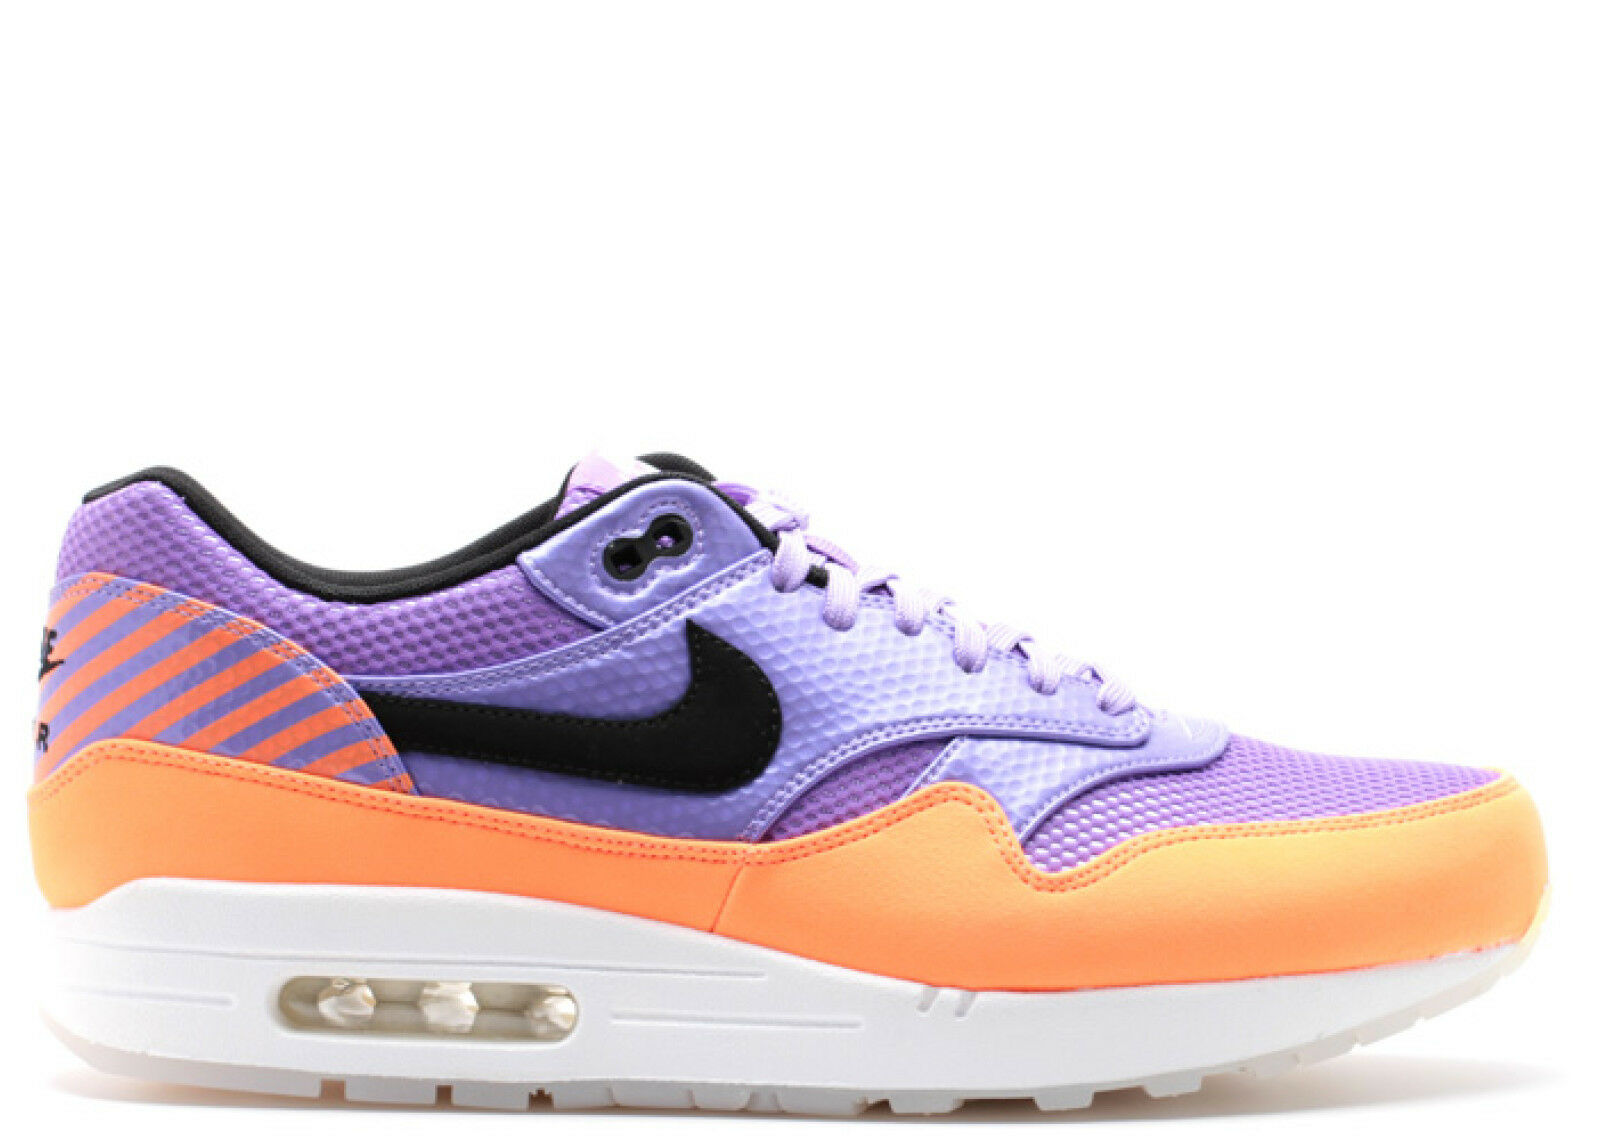 BNIB Nike Air Max 1 FB Premium QS Atomic Violet Black Orange